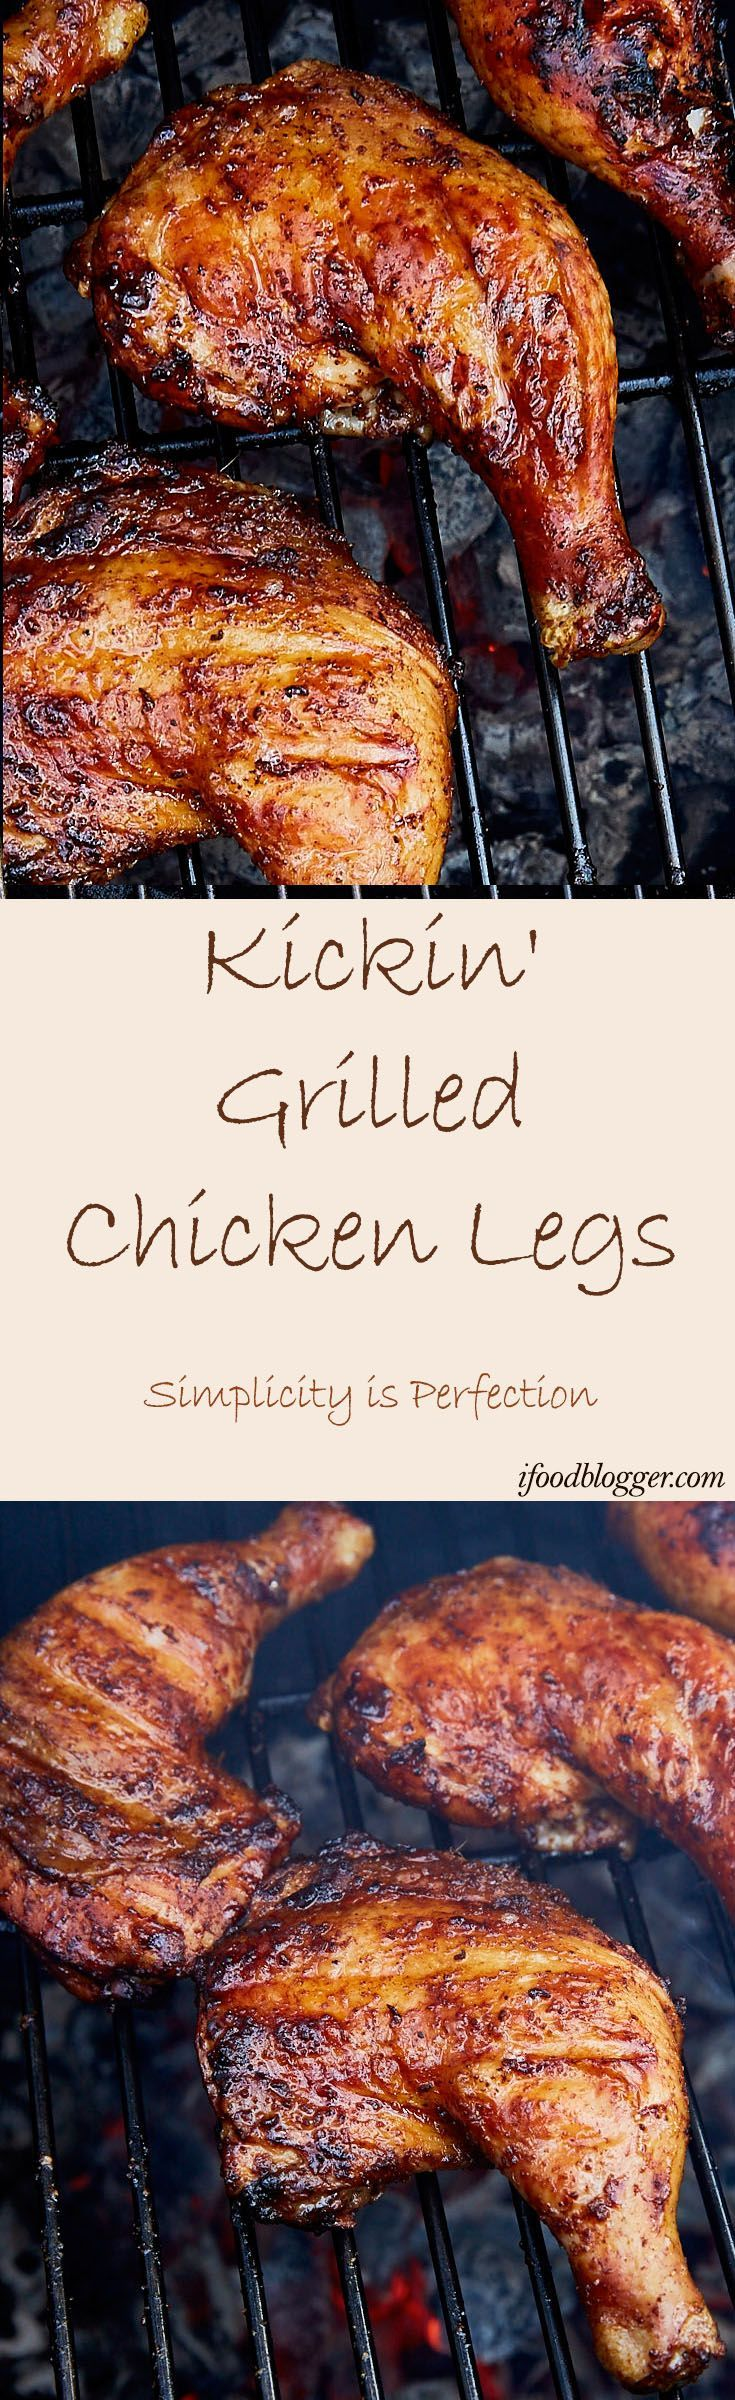 Kickin' Grilled Chicken Legs - Simplicity is Perfection